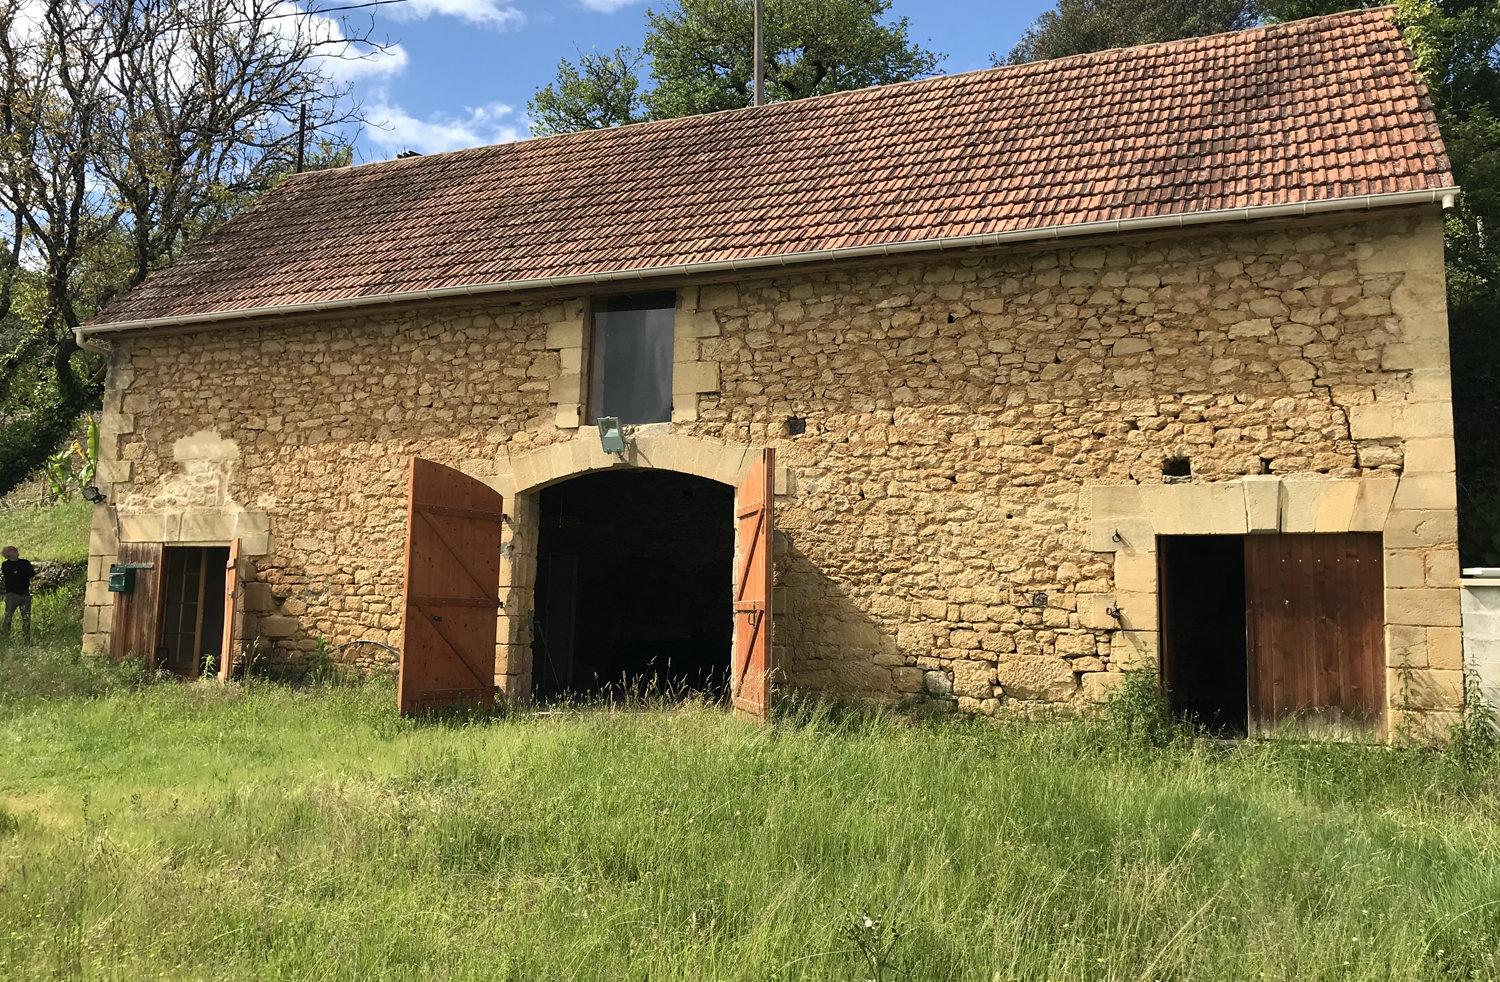 I am in the process of purchasing this stone barn from 1902 which will be my studio. I will move my etching press and some of the studio pets. Location is in Vèzac, Périgord Noir, France. Expected move in date October 1 2019.